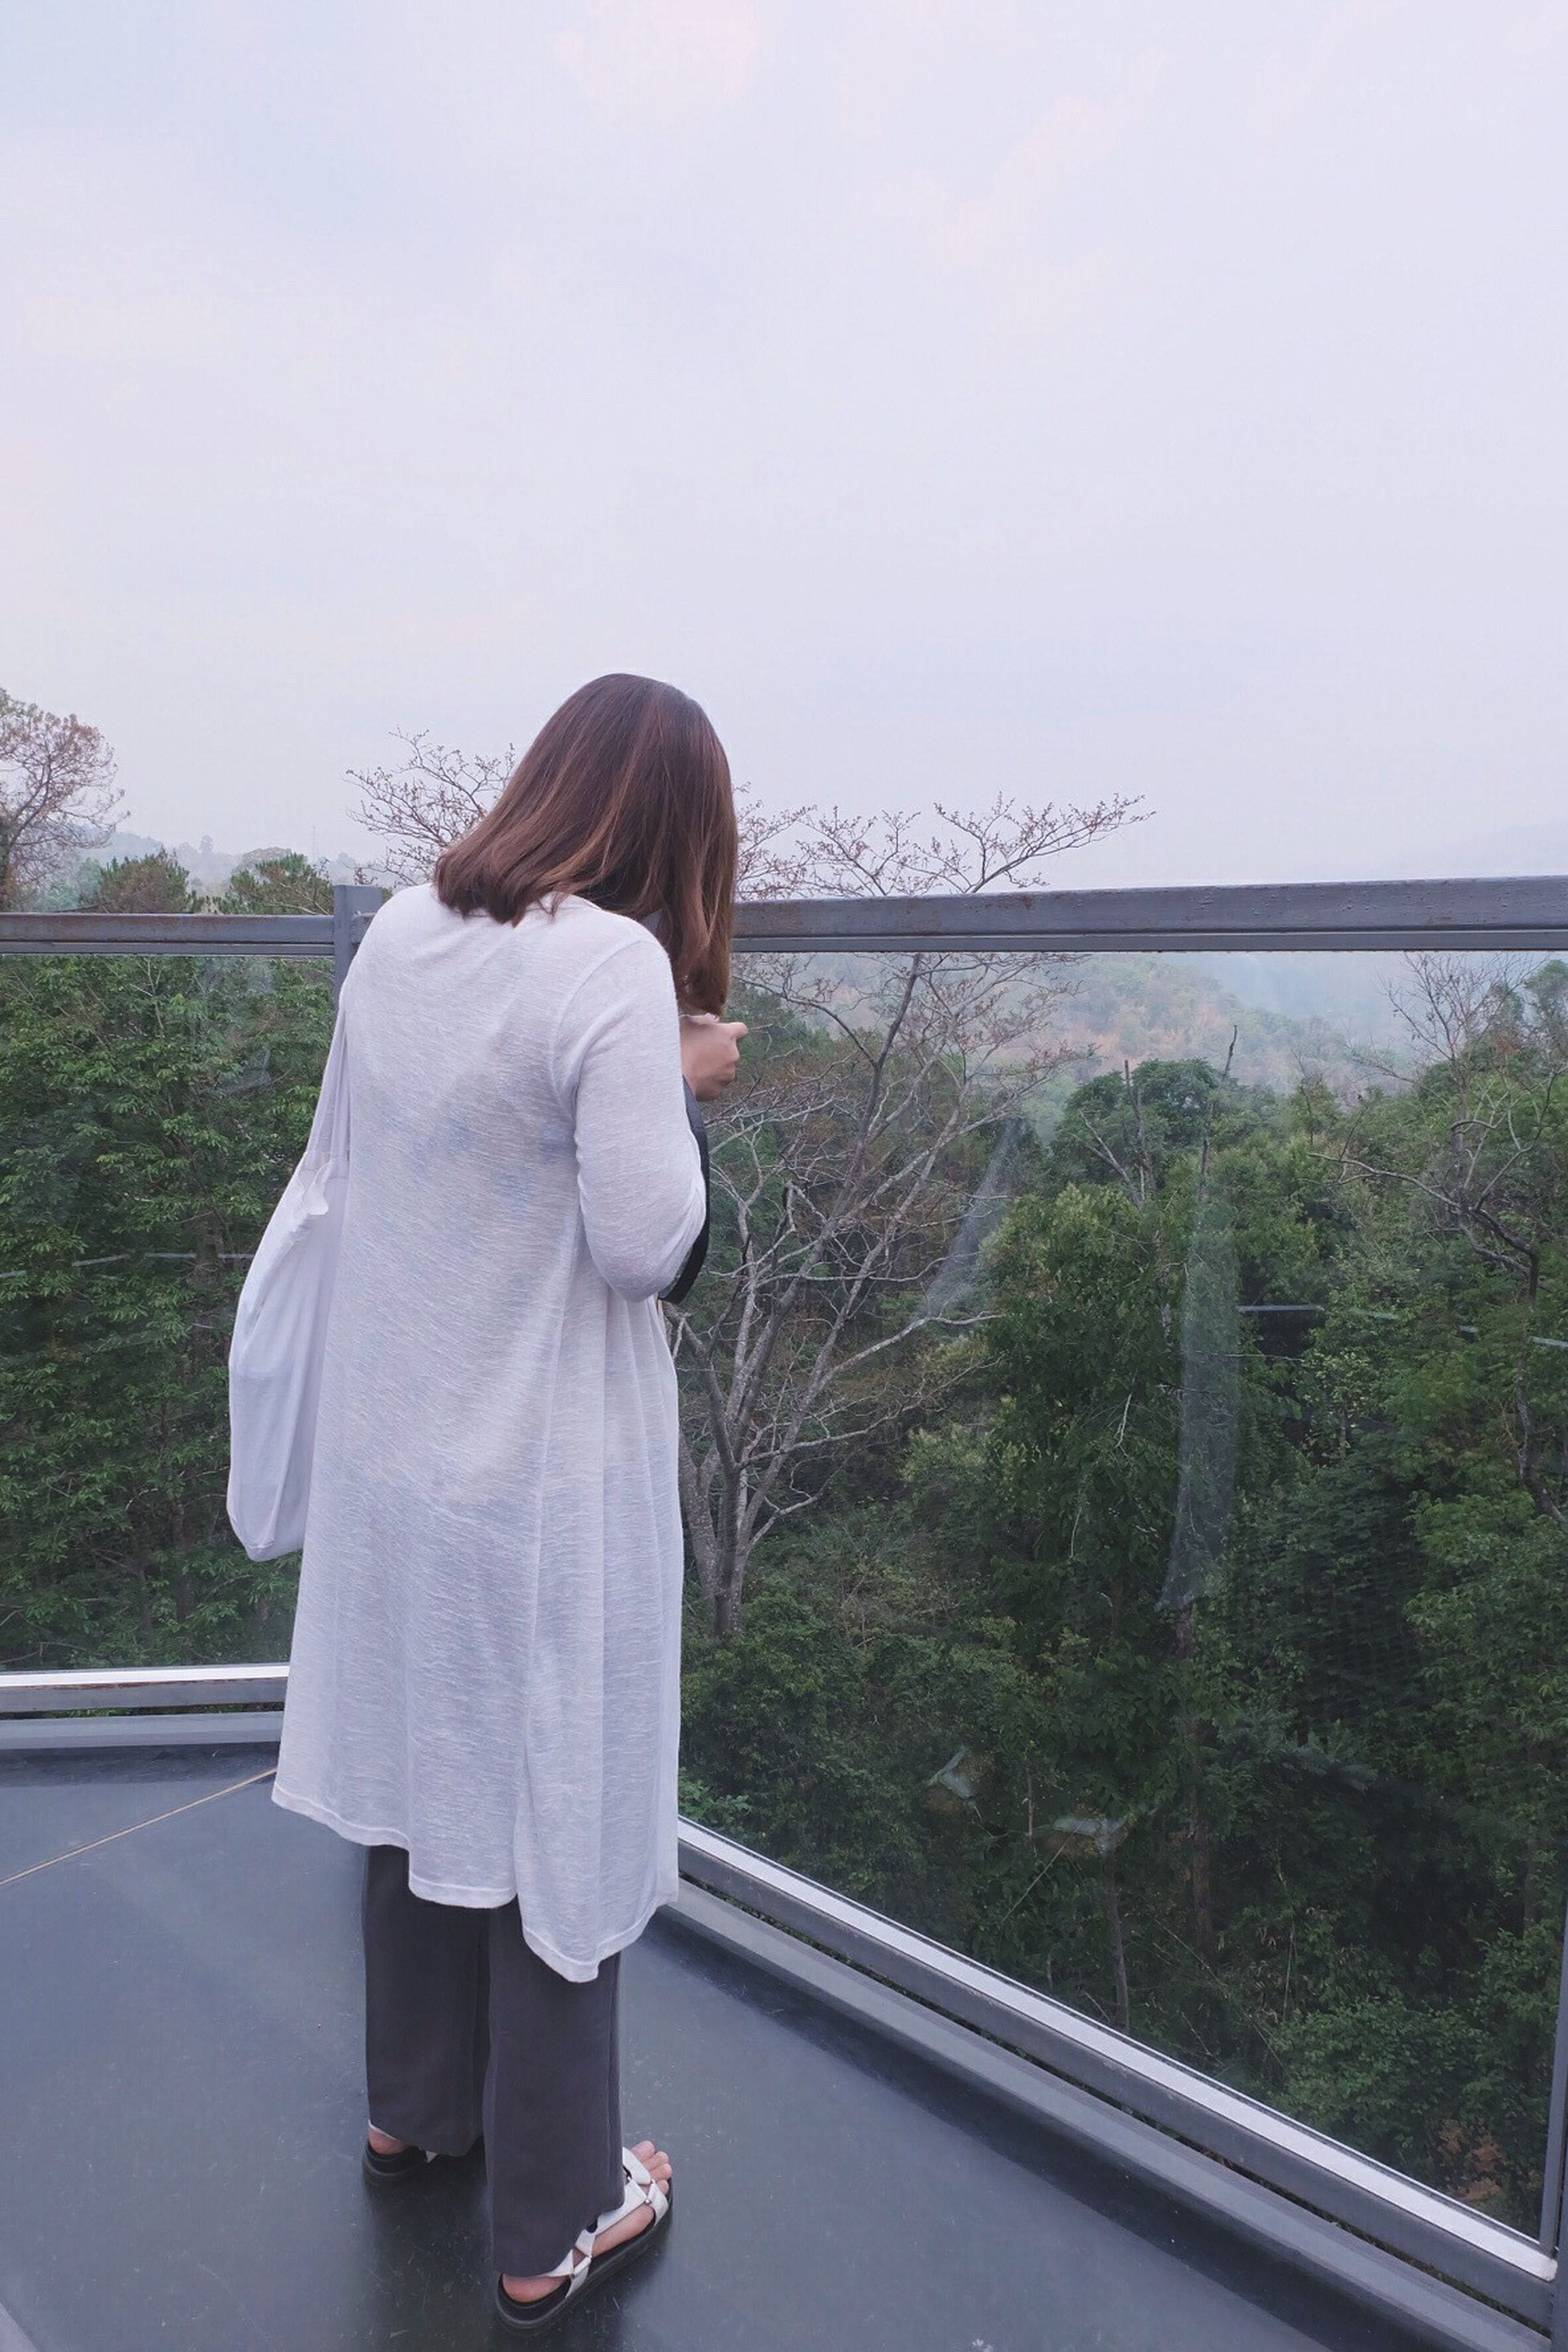 brown hair, rear view, one person, tranquility, full length, people, women, nature, day, outdoors, one woman only, adults only, water, young women, only women, adult, young adult, sky